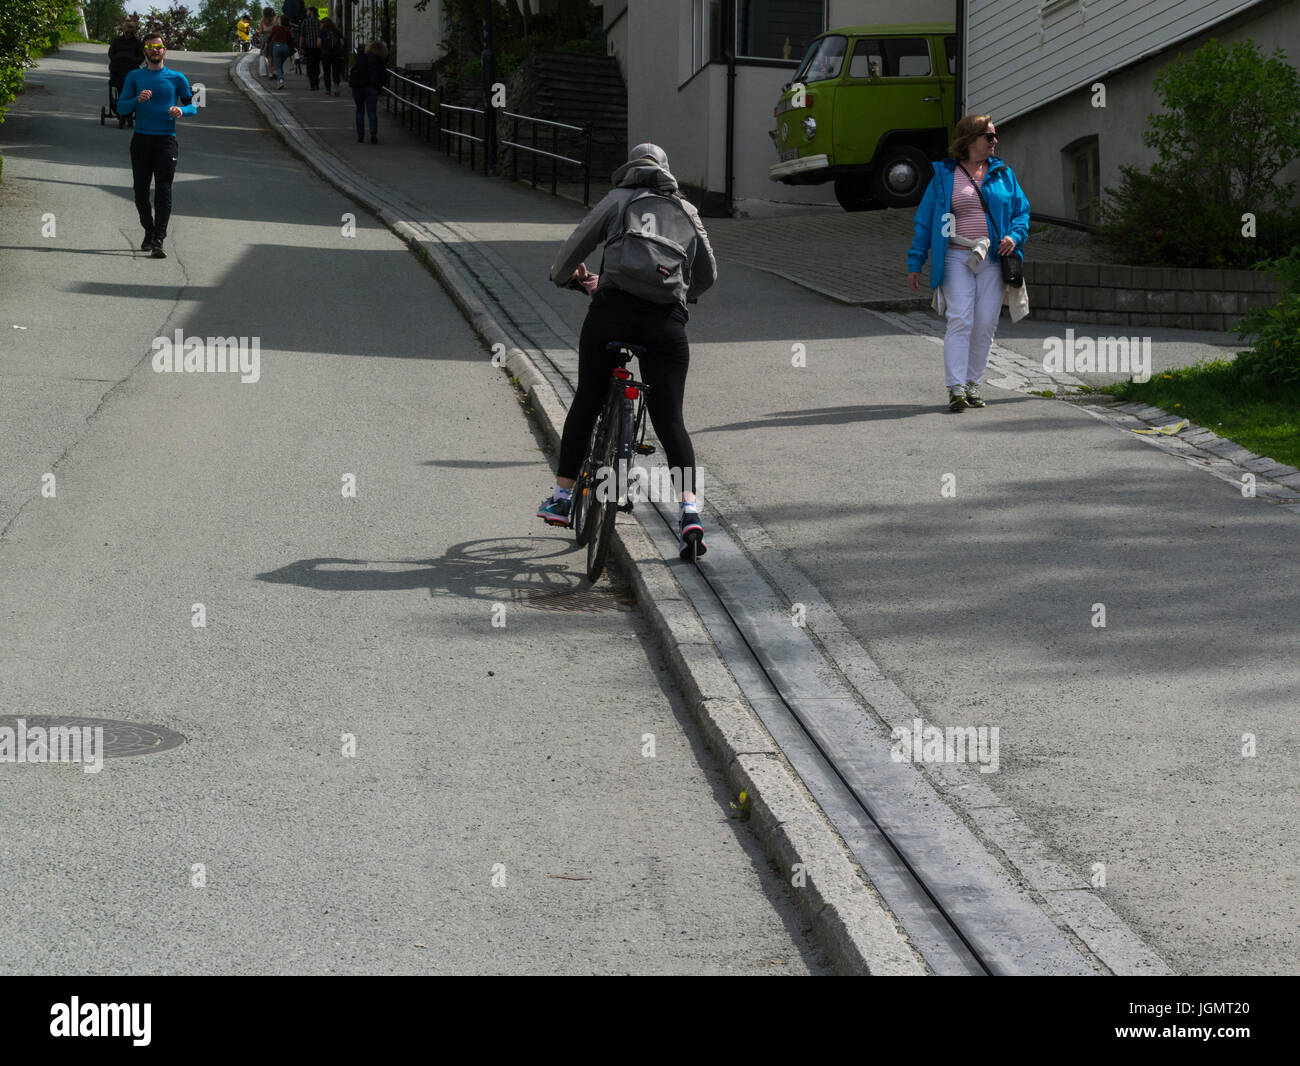 Young girl using the Trampe bicycle lift to ascend steep hill at Brubakken Nordheim Norway, runner descending hill - Stock Image